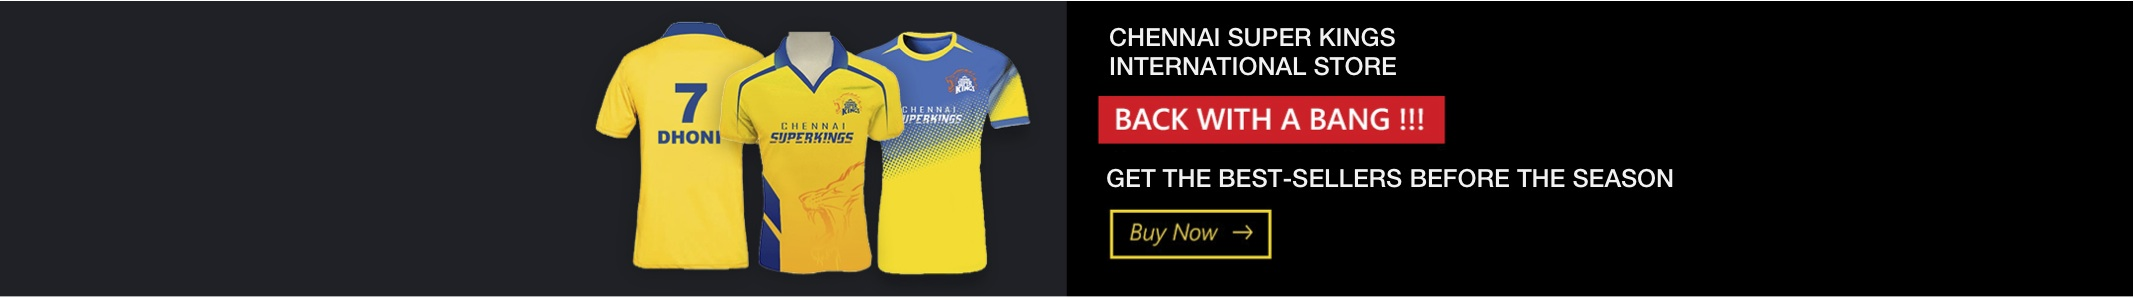 Official CSK International Store - USA, Canada, UK, Australia, Middle East, Singapore, South Africa